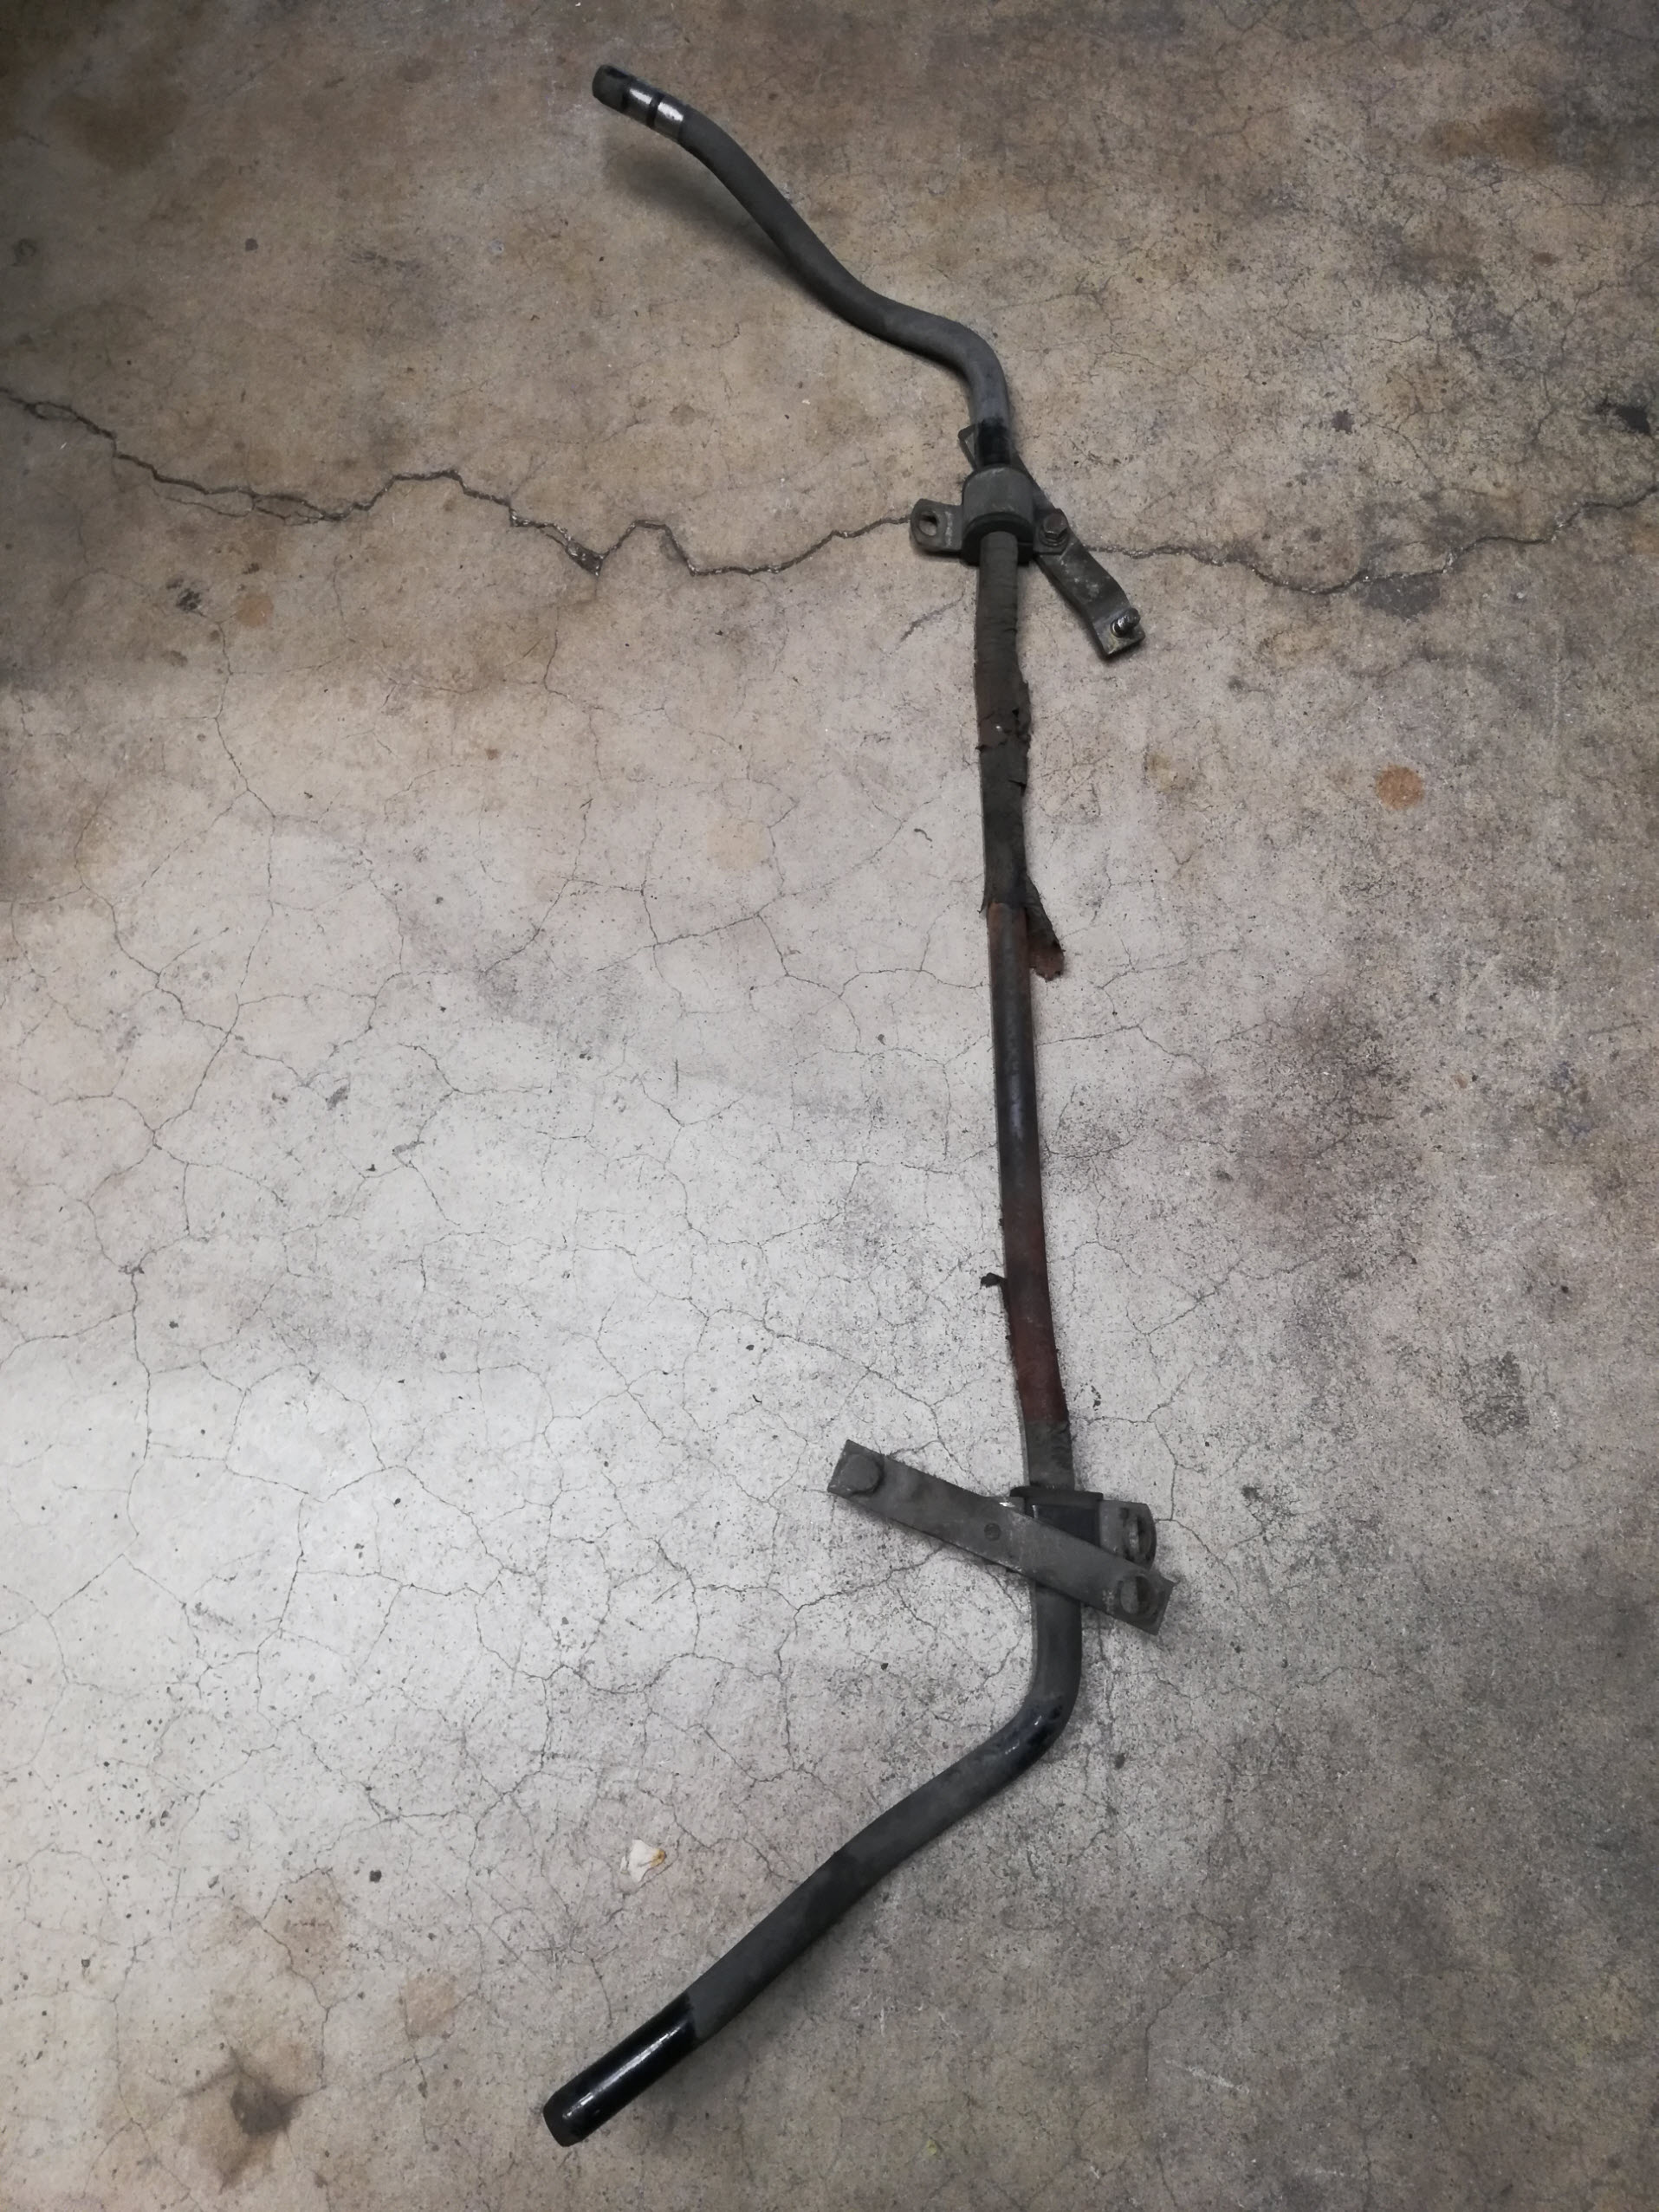 Air-cooled Porsche 911 front swaybar removed.